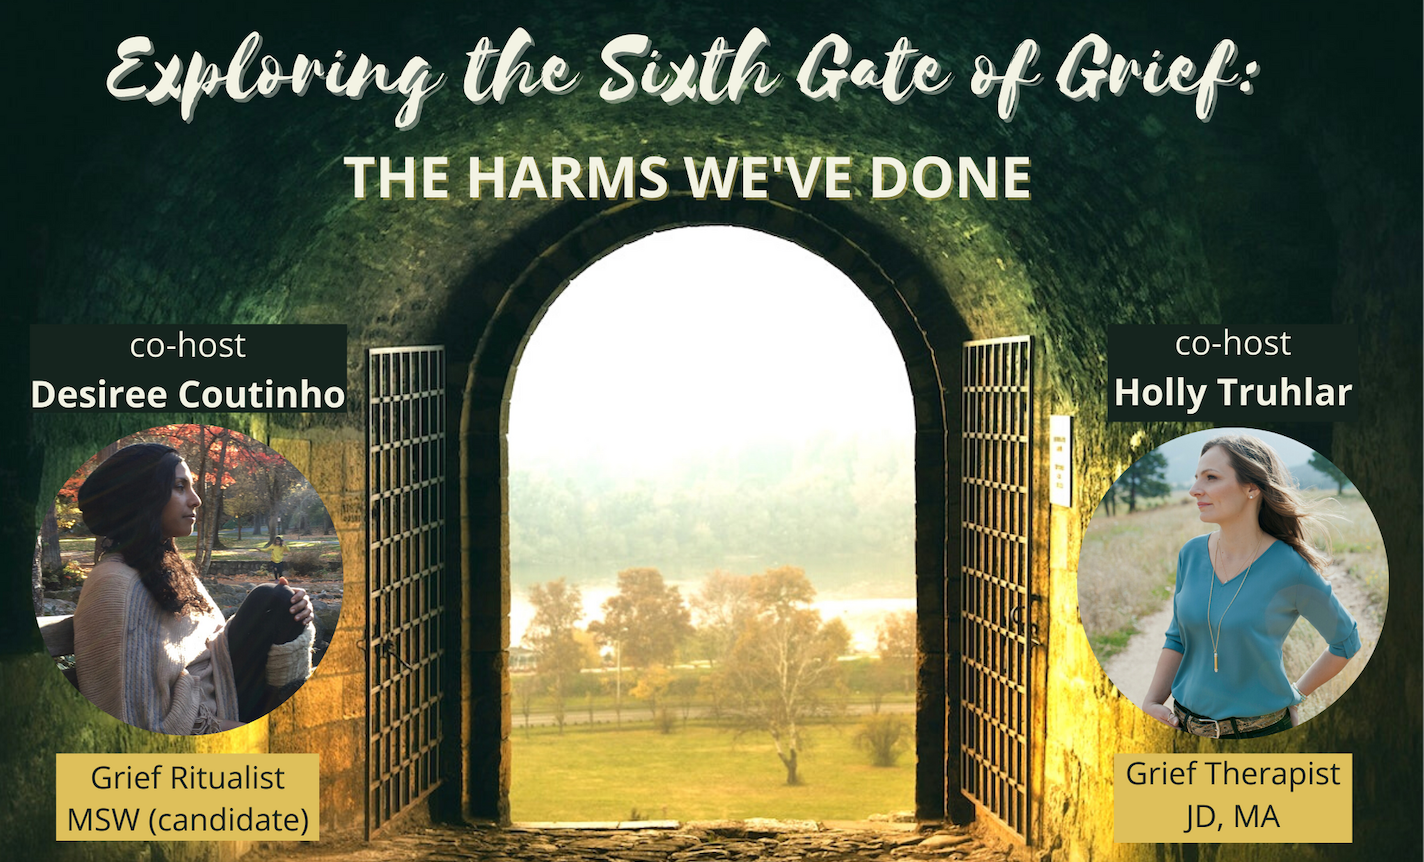 Exploring the 6th Gate of Grief: The Harms We've Caused